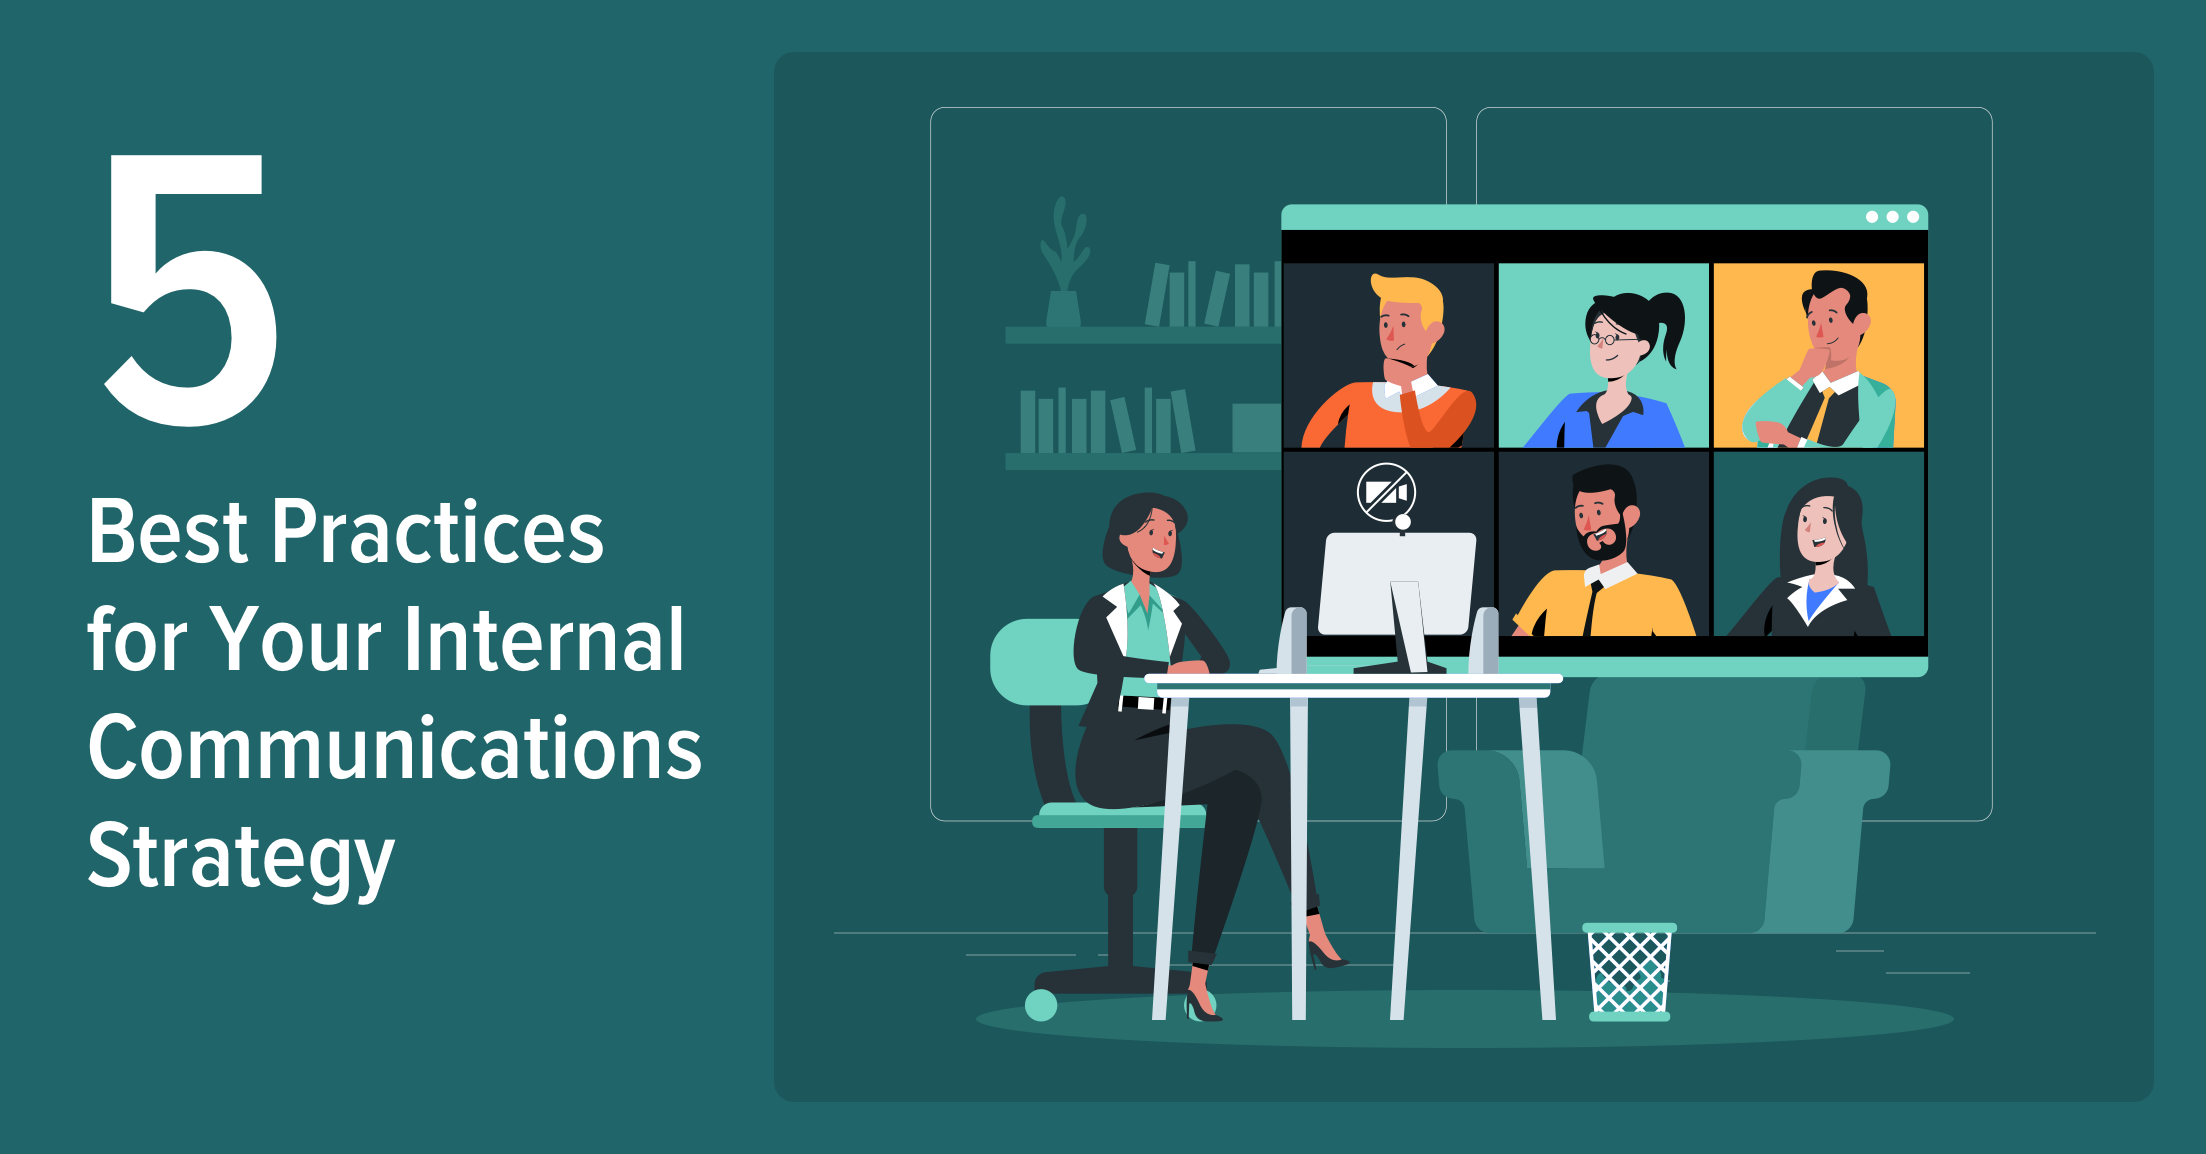 5 Best Practices for Your Internal Communications Strategy